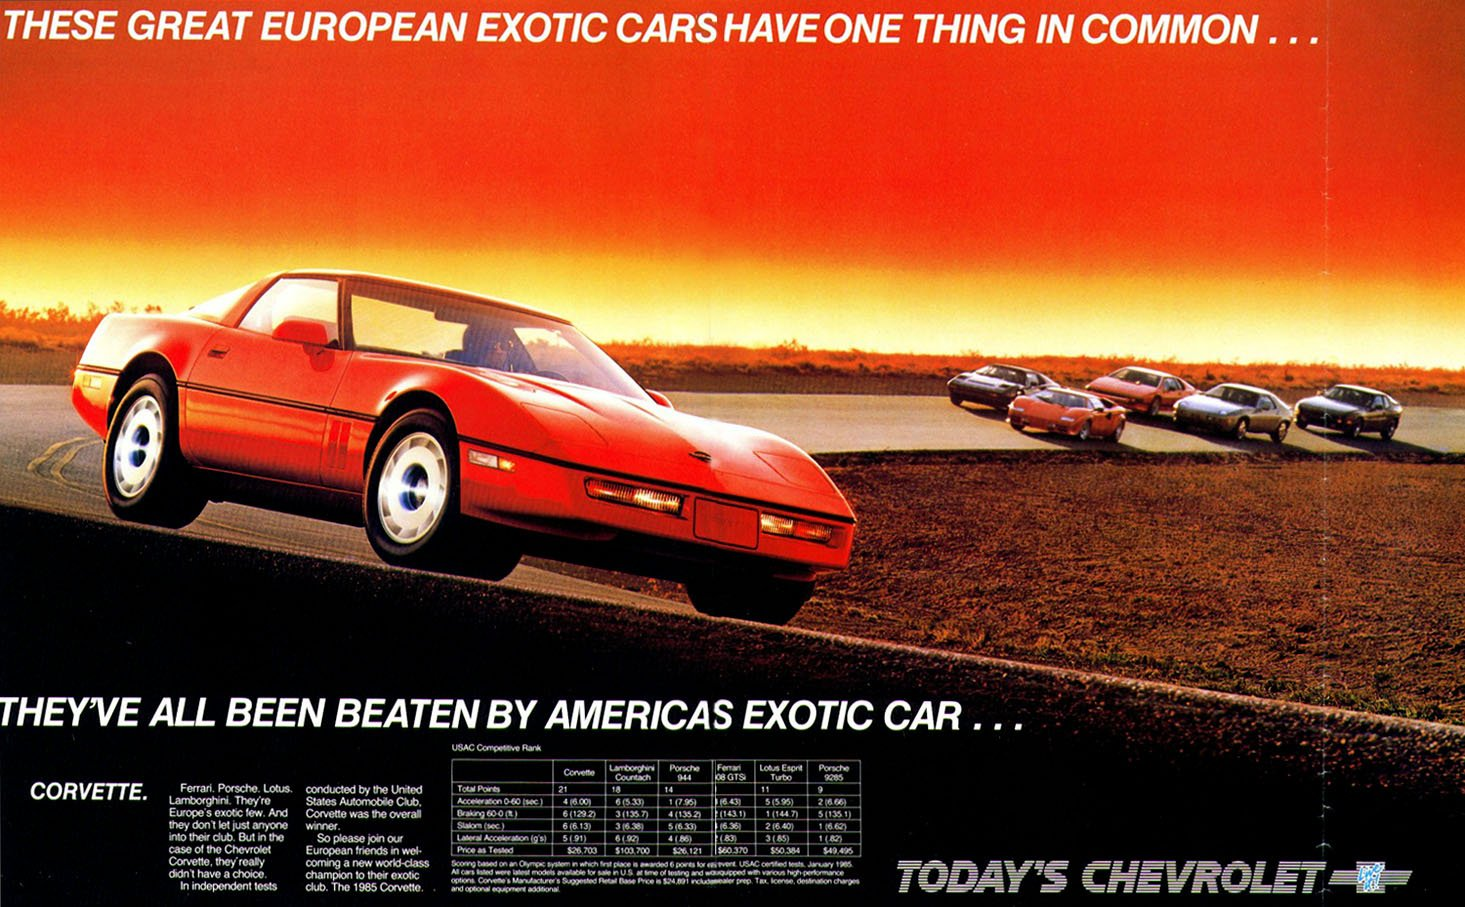 1984 Corvette Belt Diagram Electrical Wiring Diagrams G30 1985 Commercial The Exotic American Online Chevy